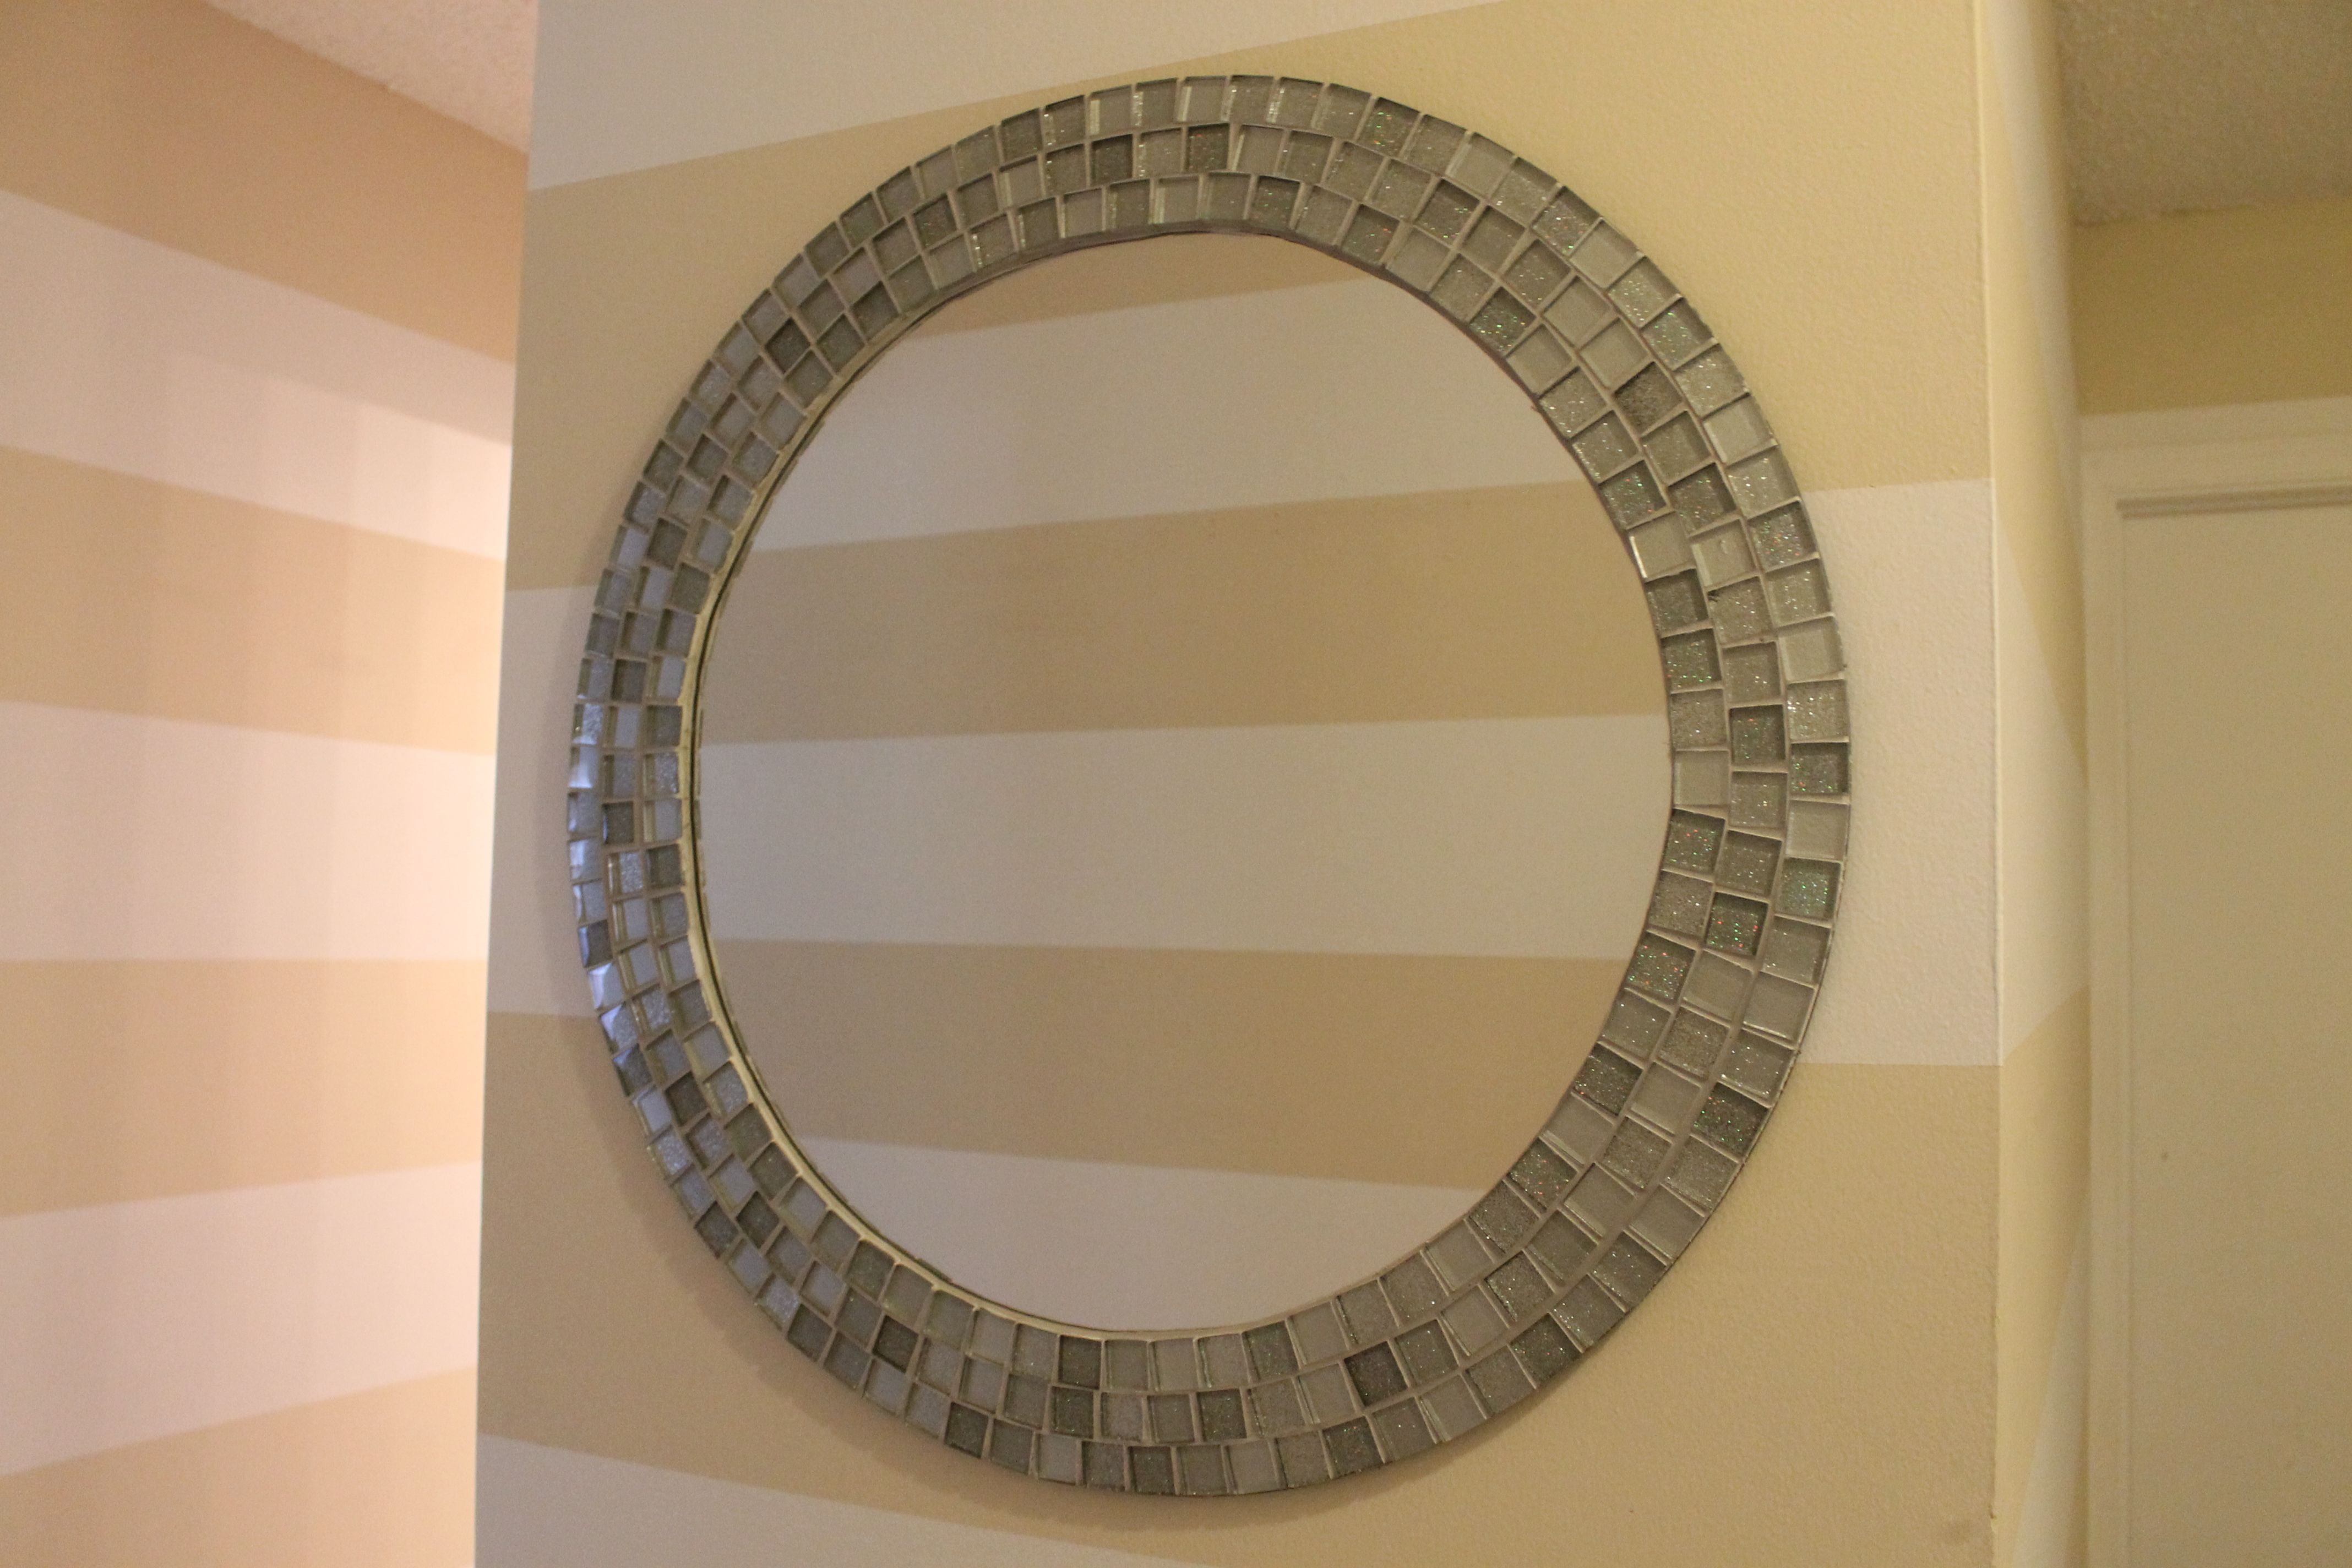 Diy Mirror Diy With Instructions For This Mosaic Tiled Mirror Way Better